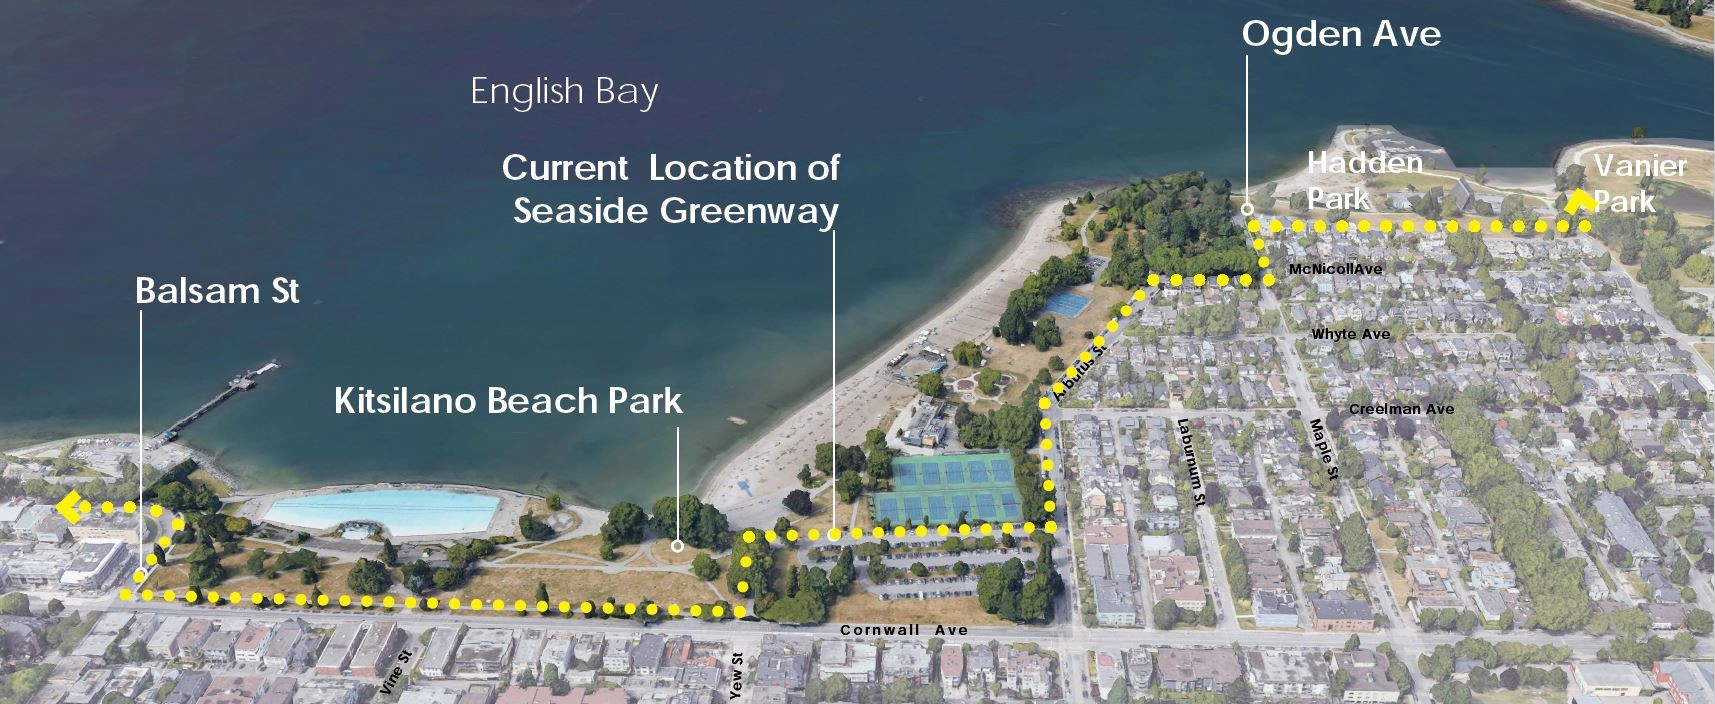 Aerial view of Kitsilano Beach Park showing the current route of the pathway from Balsam Street to Ogden Avenue in a dotted yellow line.